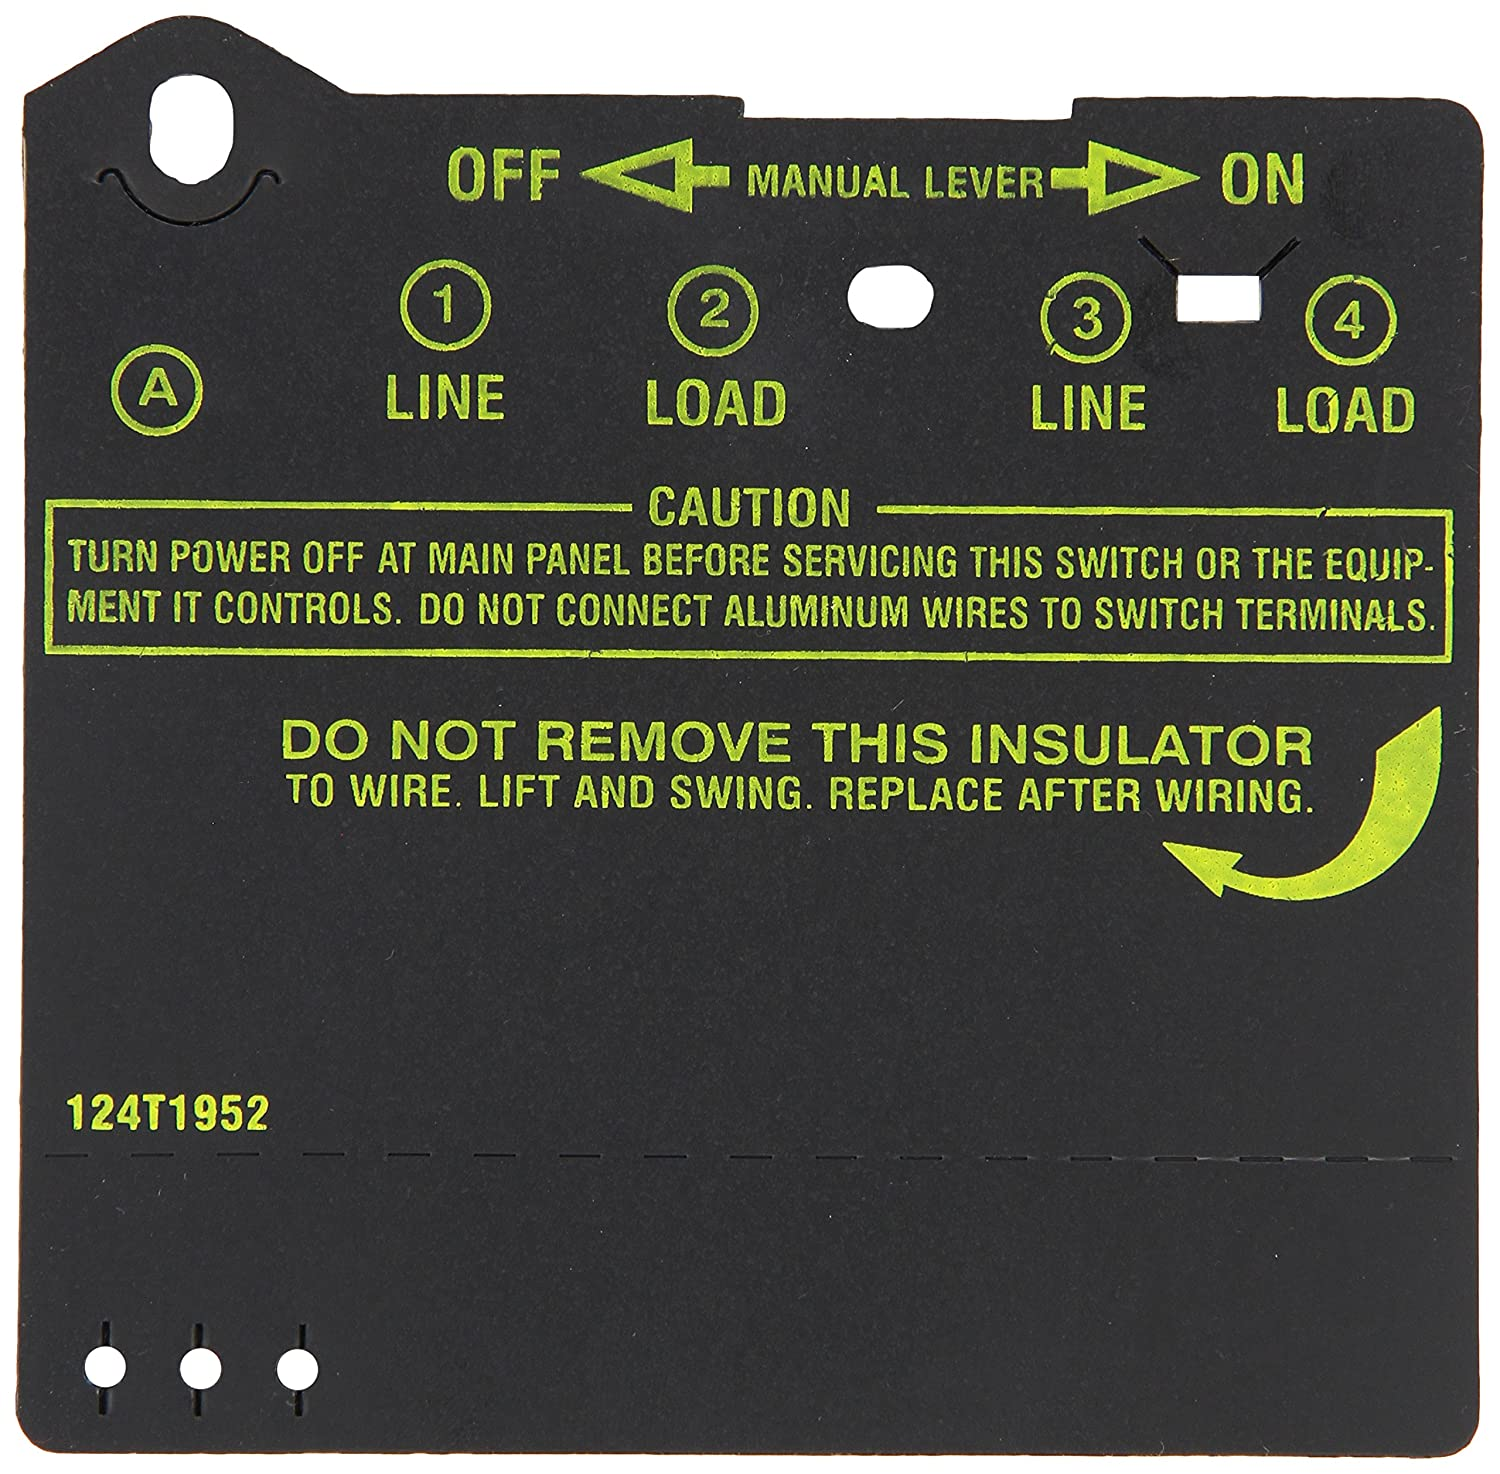 Amazon.com : 124T1952 INSULATOR FOR T100 : Wall Timer Switches ...